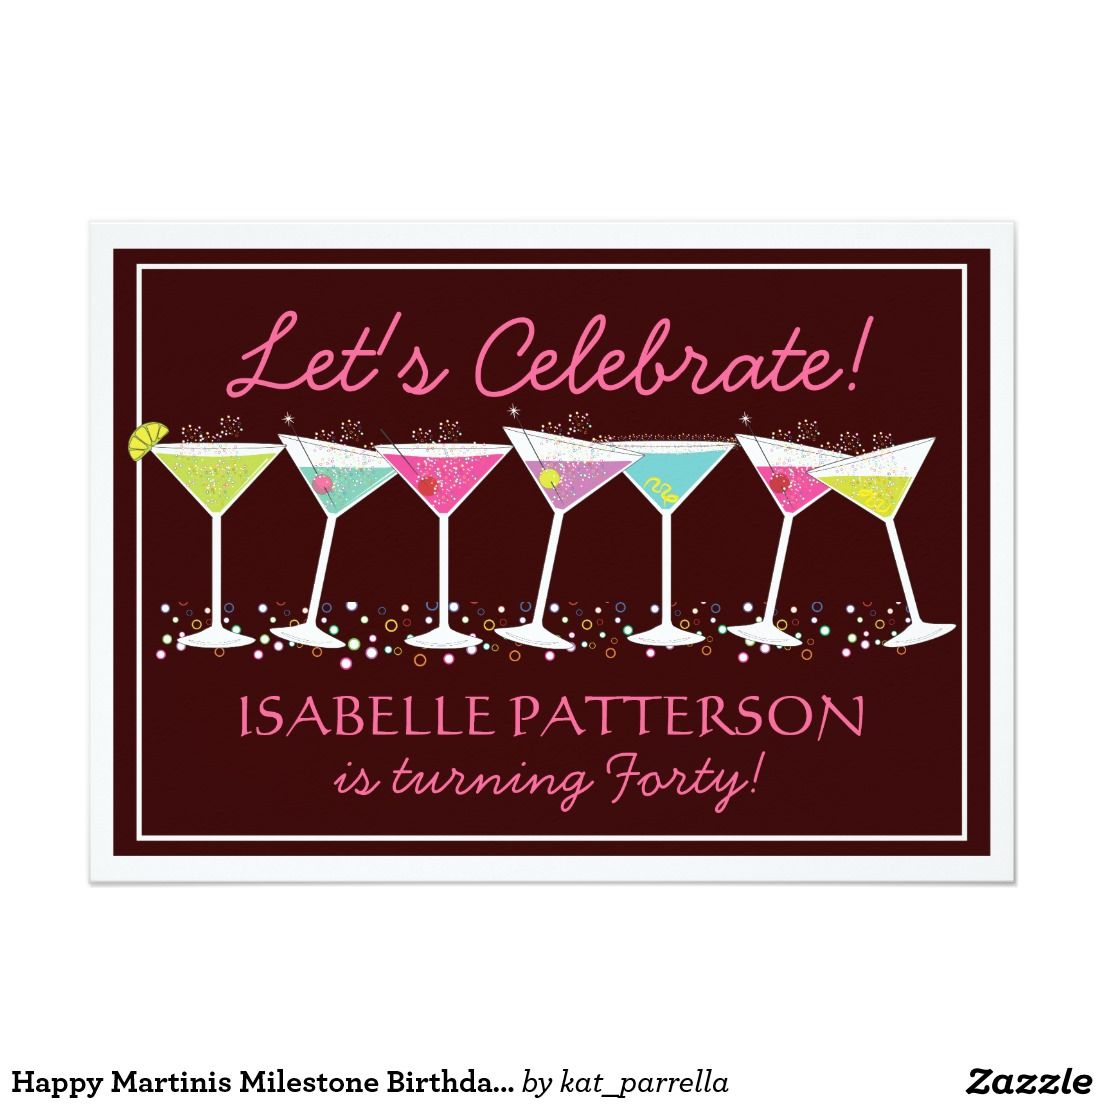 Happy martinis milestone birthday party invitation 5 x 7 happy martinis milestone birthday party invitation x invitation cards personalize back of invites with your party details designed by katparrella kristyandbryce Image collections